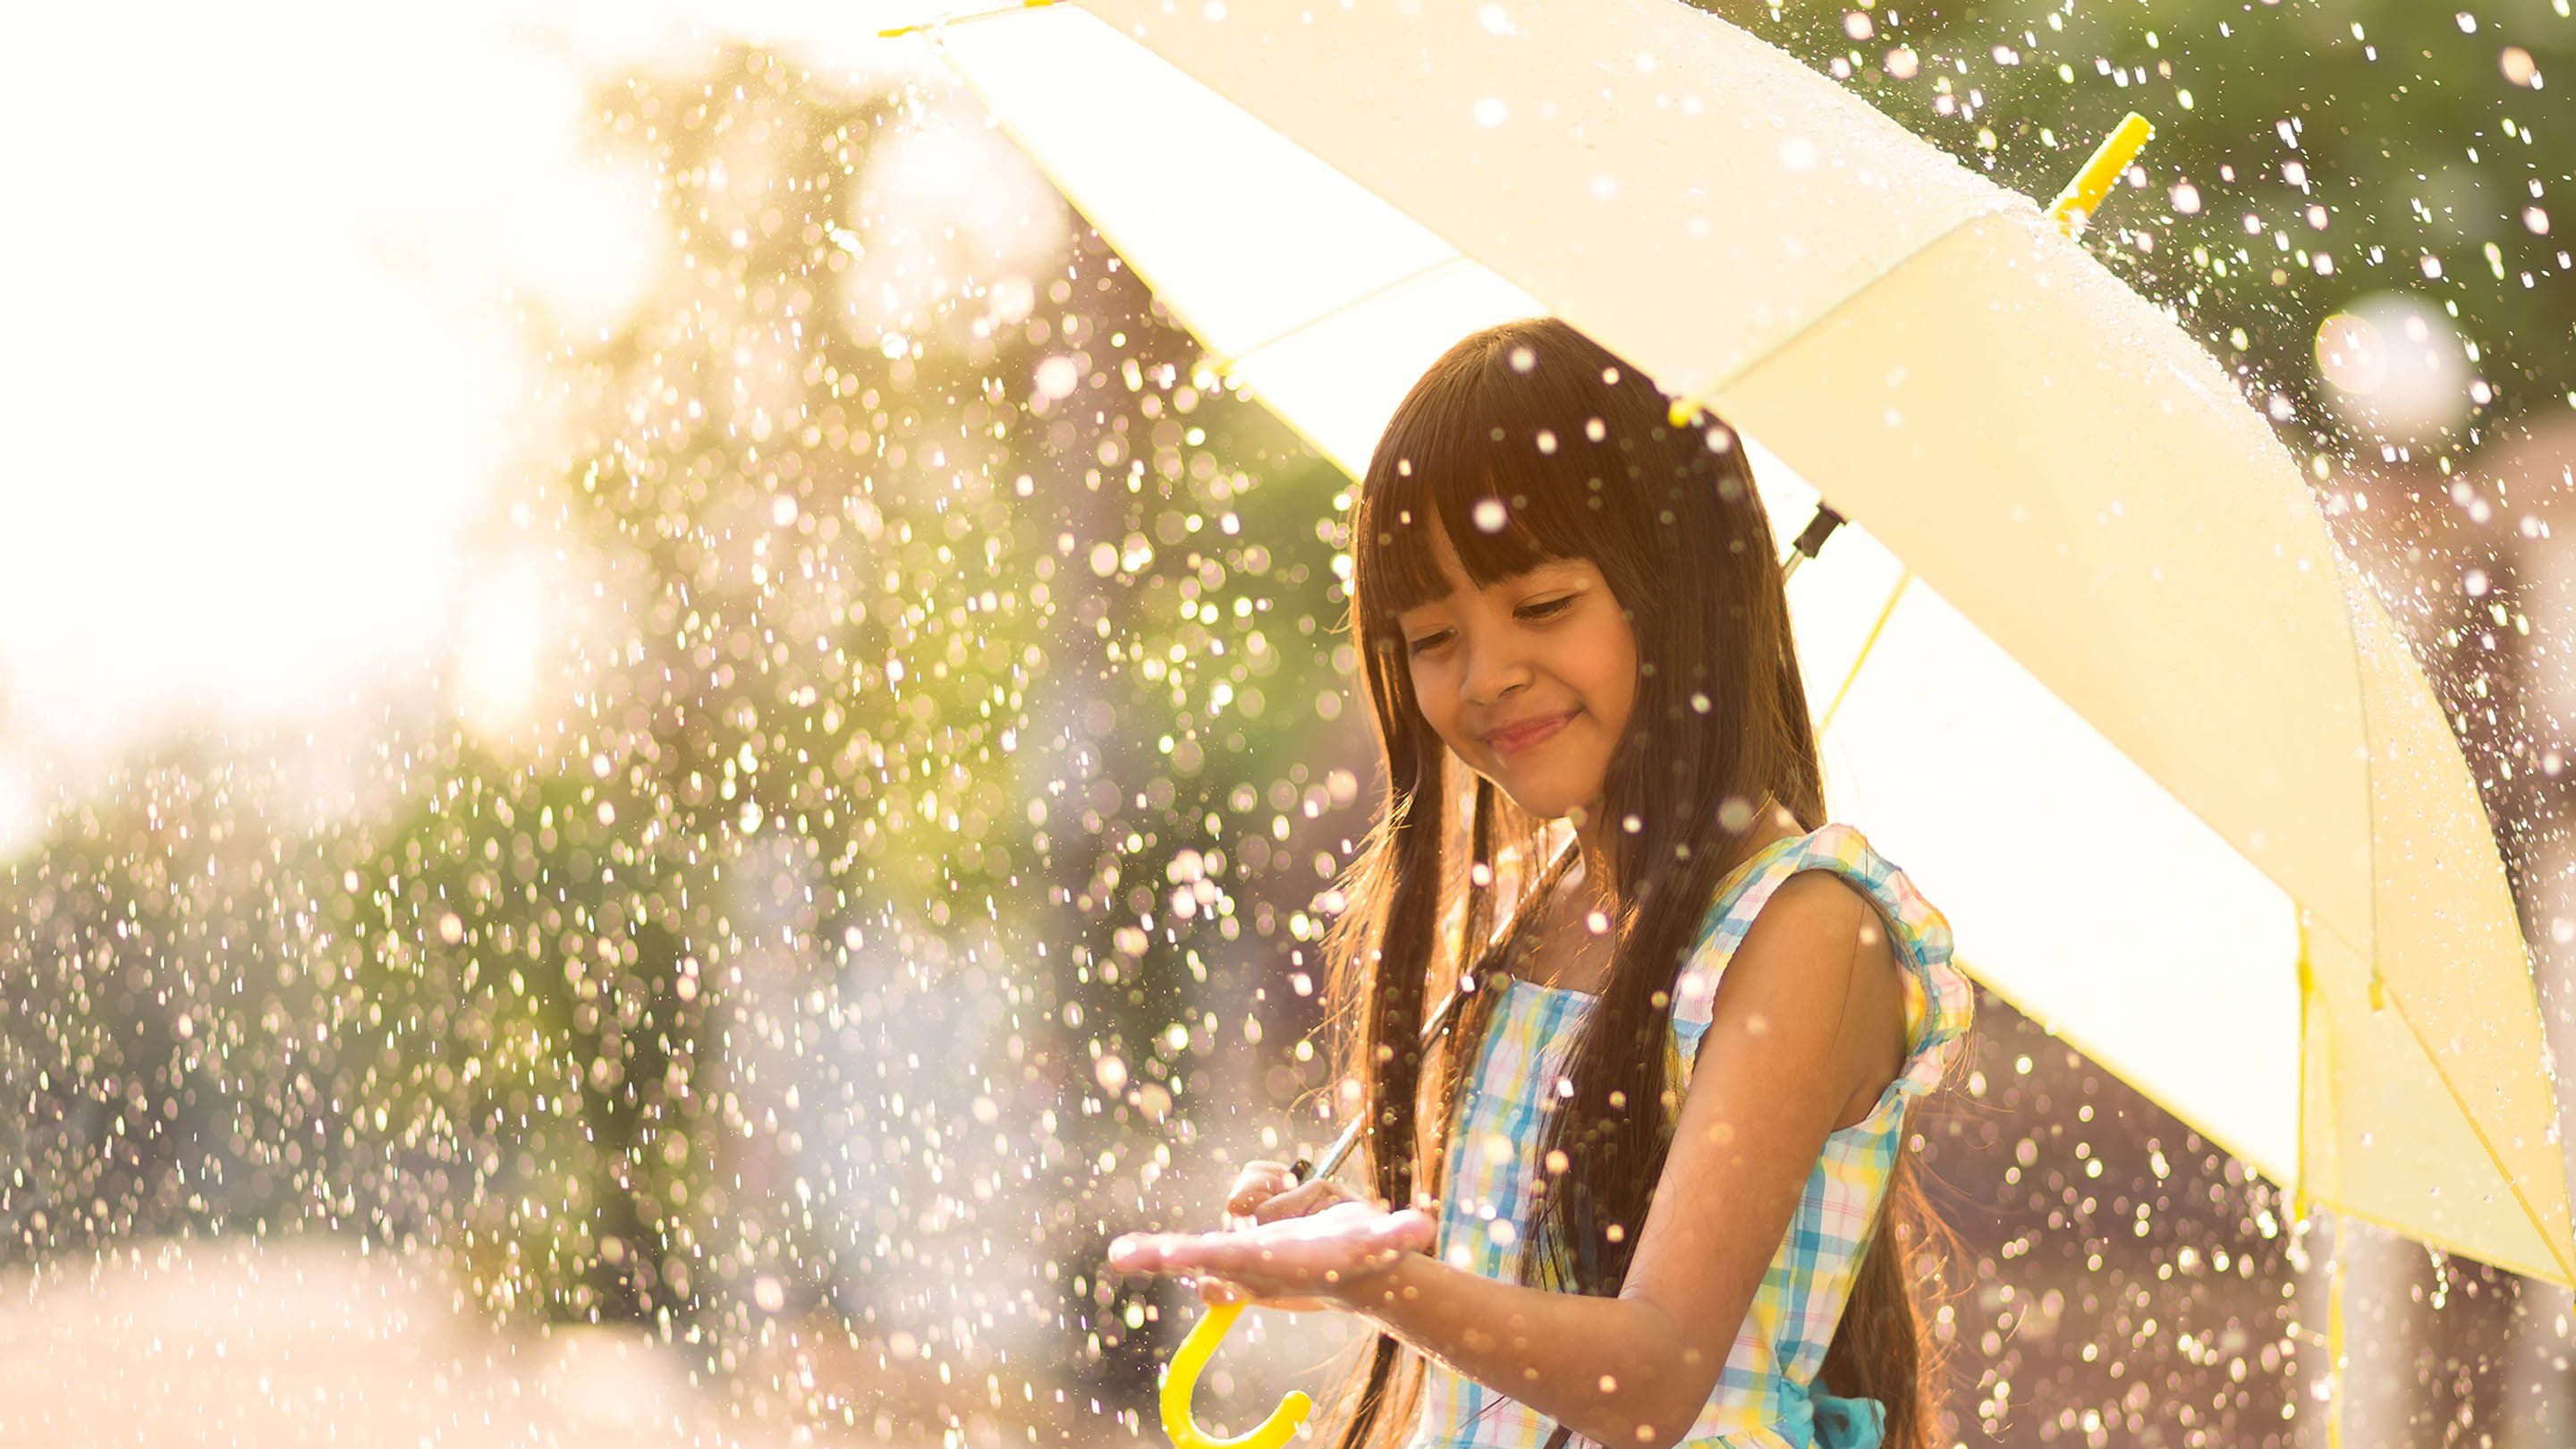 Young girl smiling and holding an umbrella, with hand extended touching raindrops.